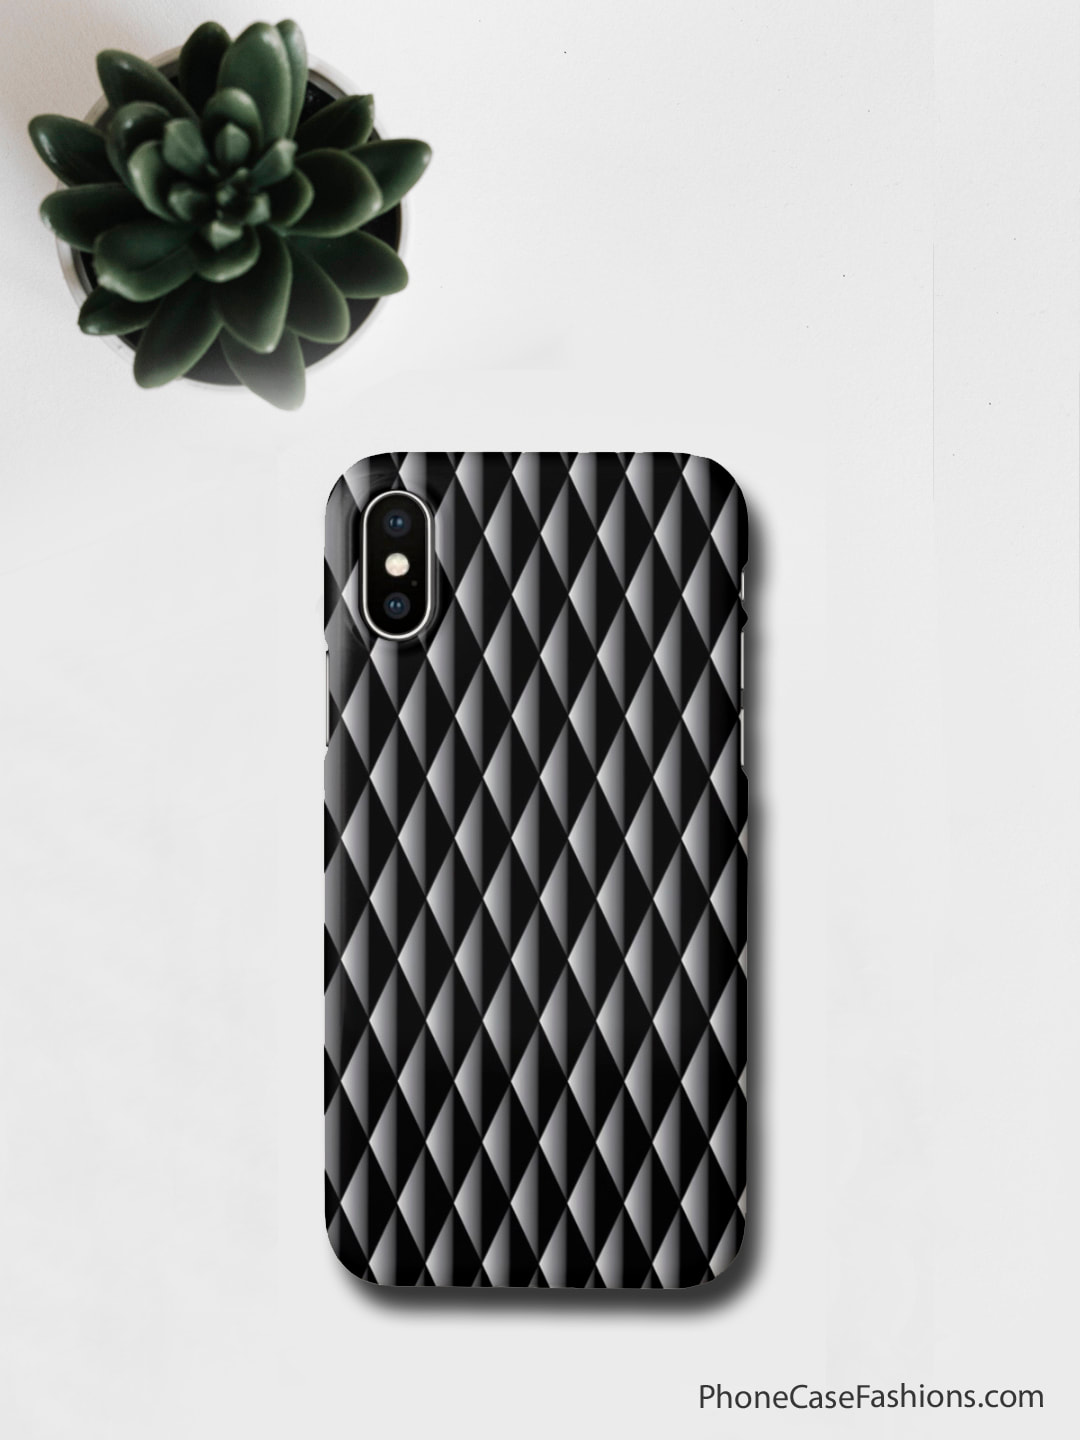 3-D look gray-to-black diamond pattern. Add your initials, monogram, name or leave the cool pattern to grab compliements. Don't hide behind an ugly phone case, design one as unique as you are. (Great Father's Day, birthday or Christmas gift!) Shop PhoneCaseFashions.com